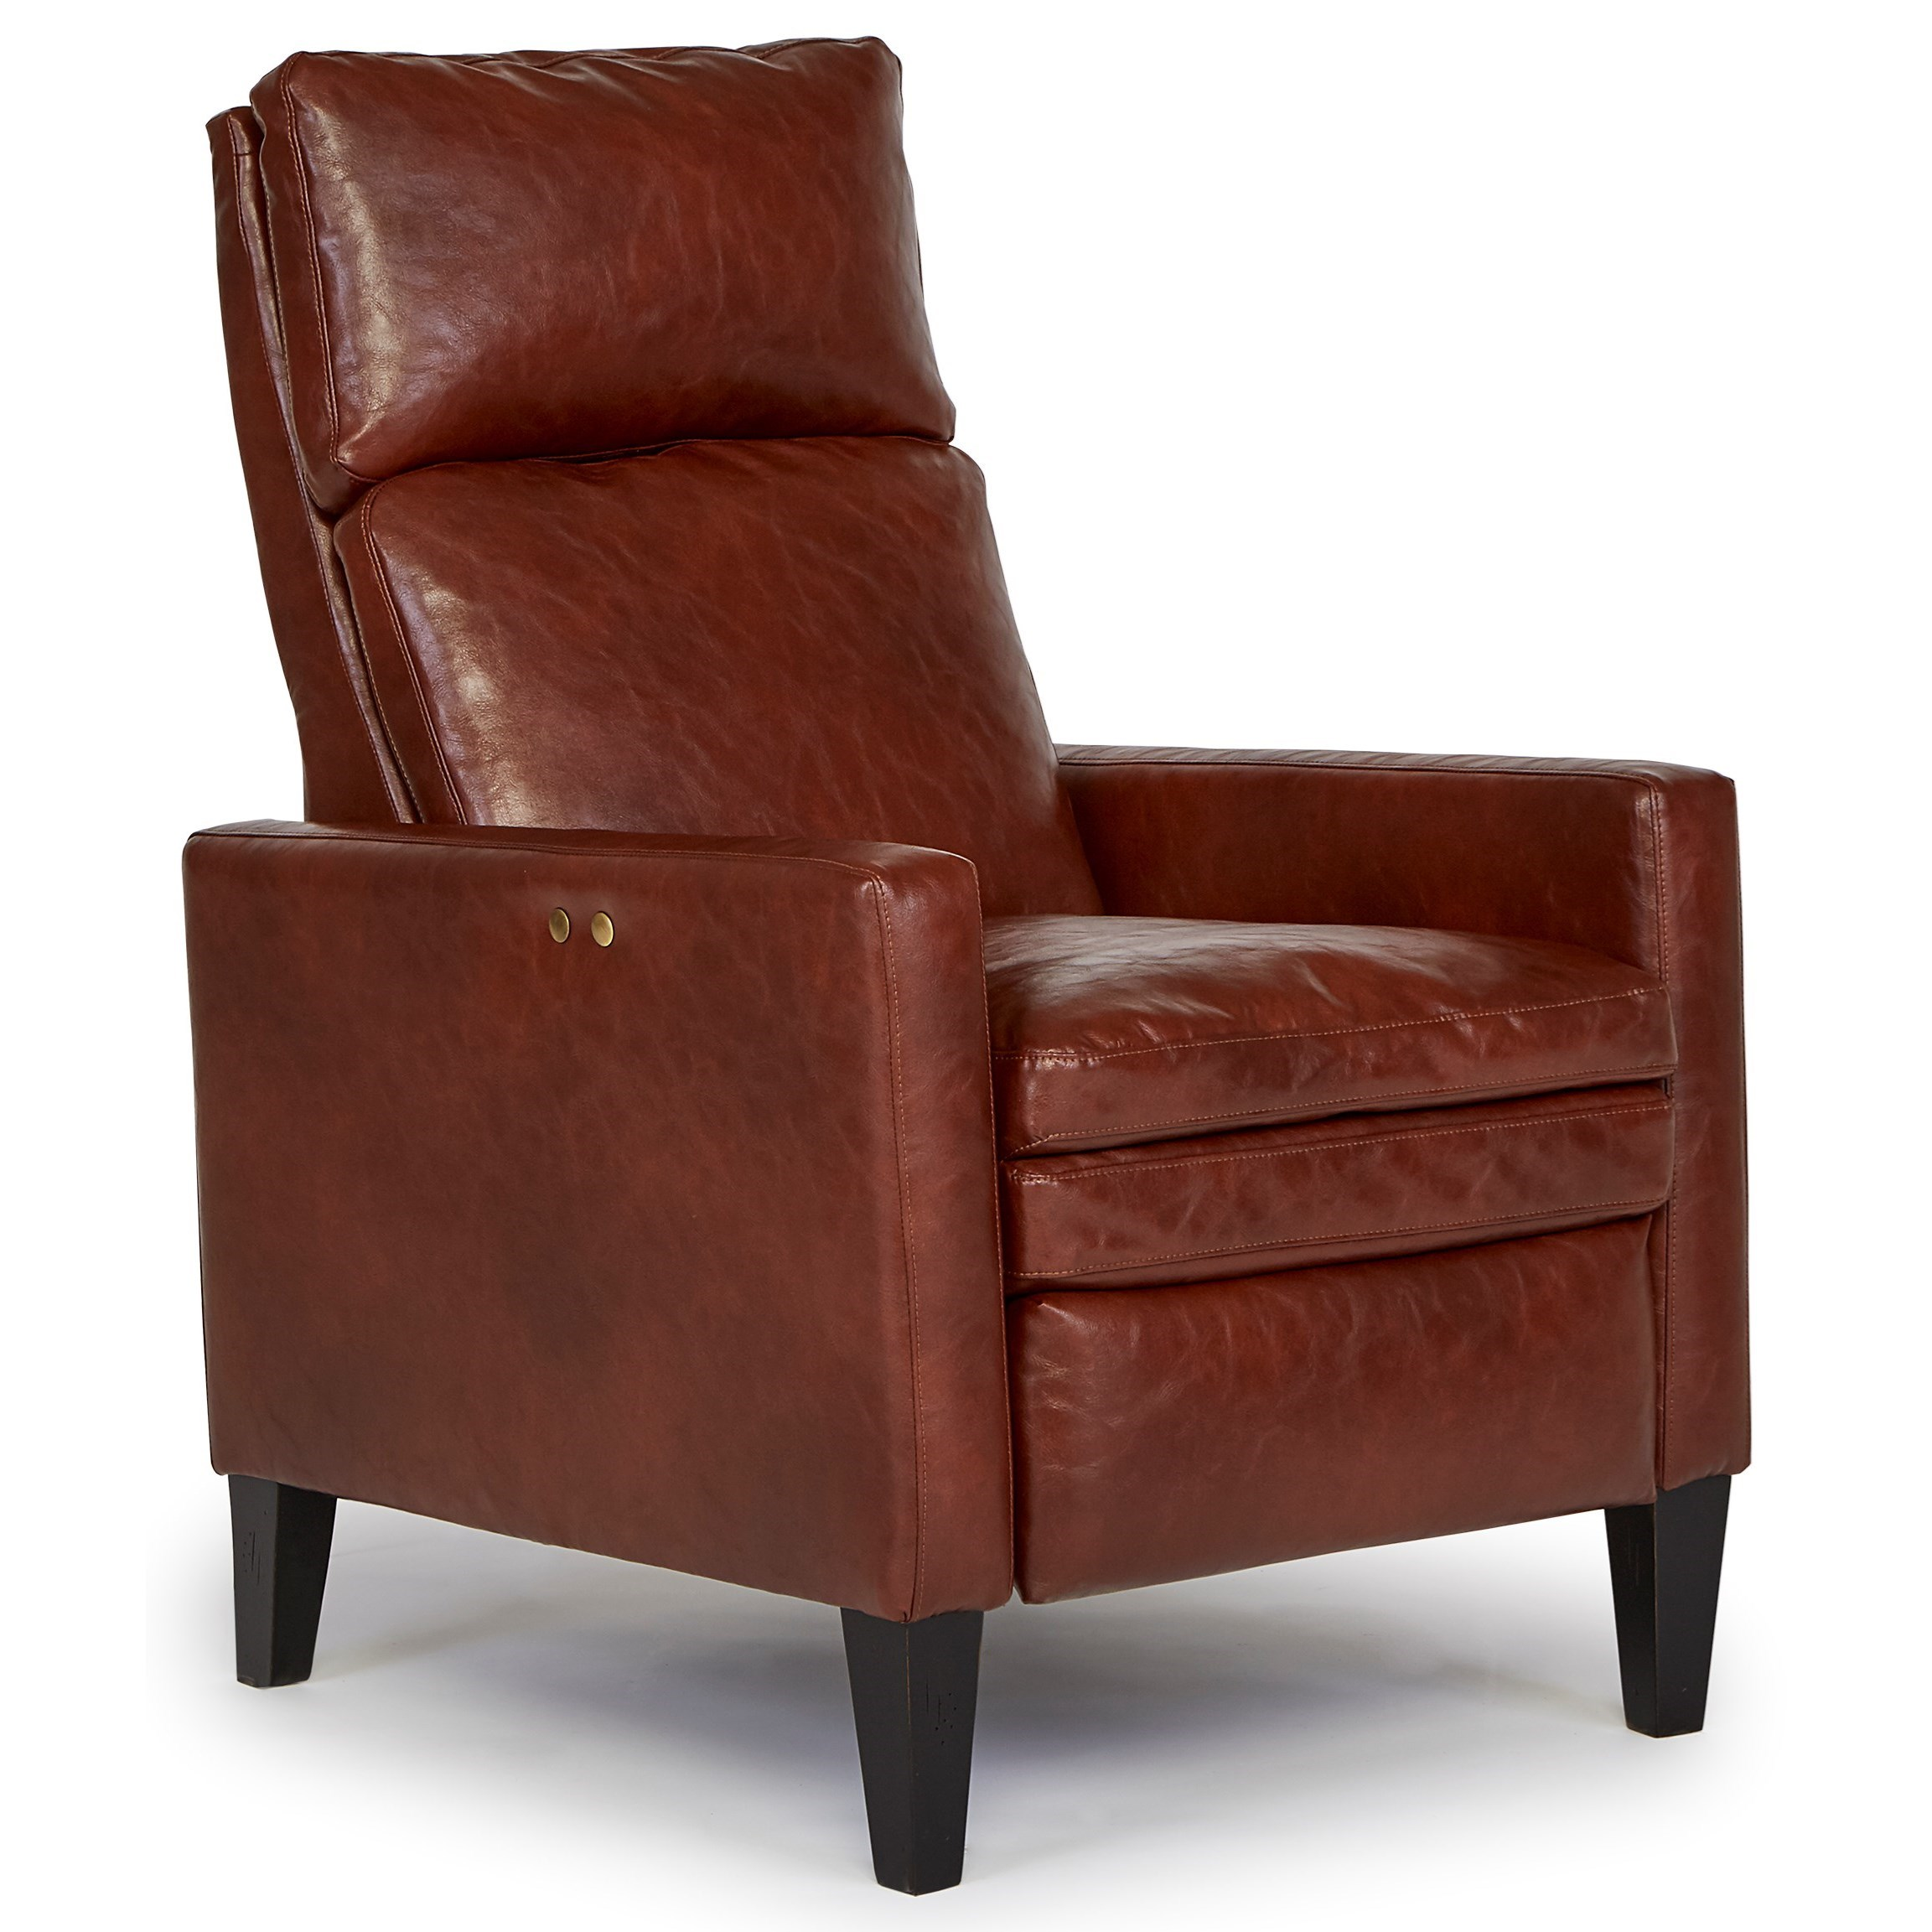 Best Home Furnishings Pushback Recliners Myles High Leg